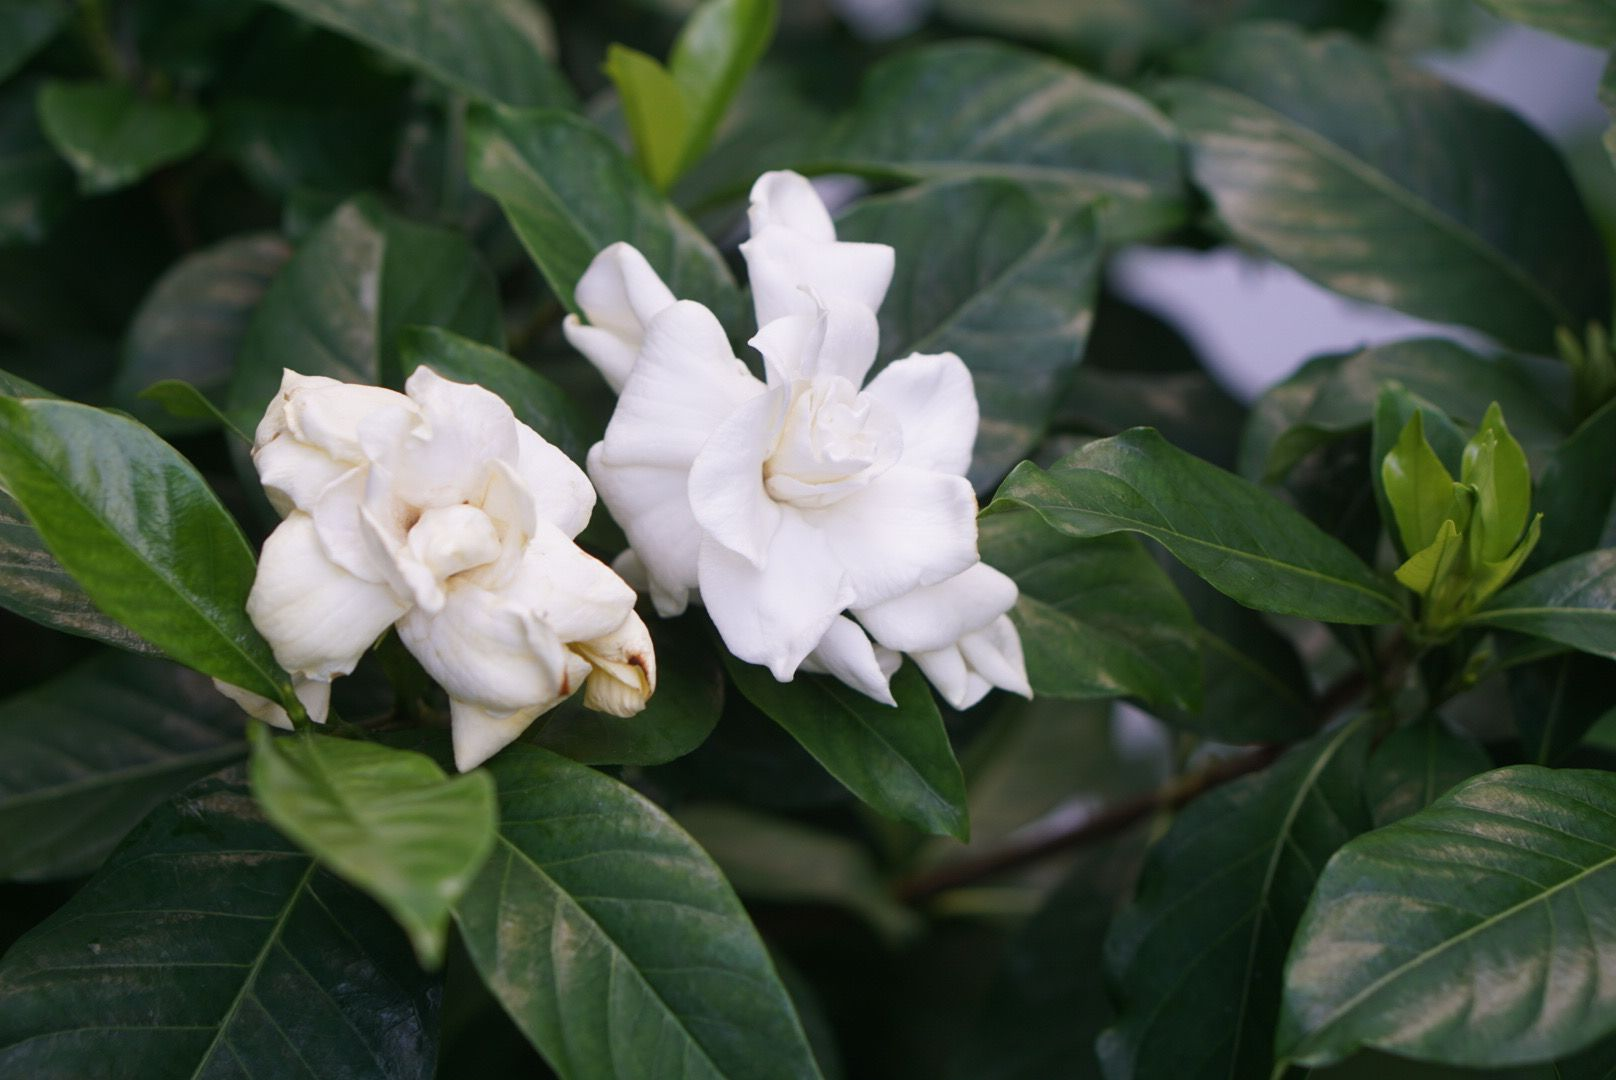 Arabian jasmine shrub with white ruffled flowers surrounded by dark green oval leaves closeup